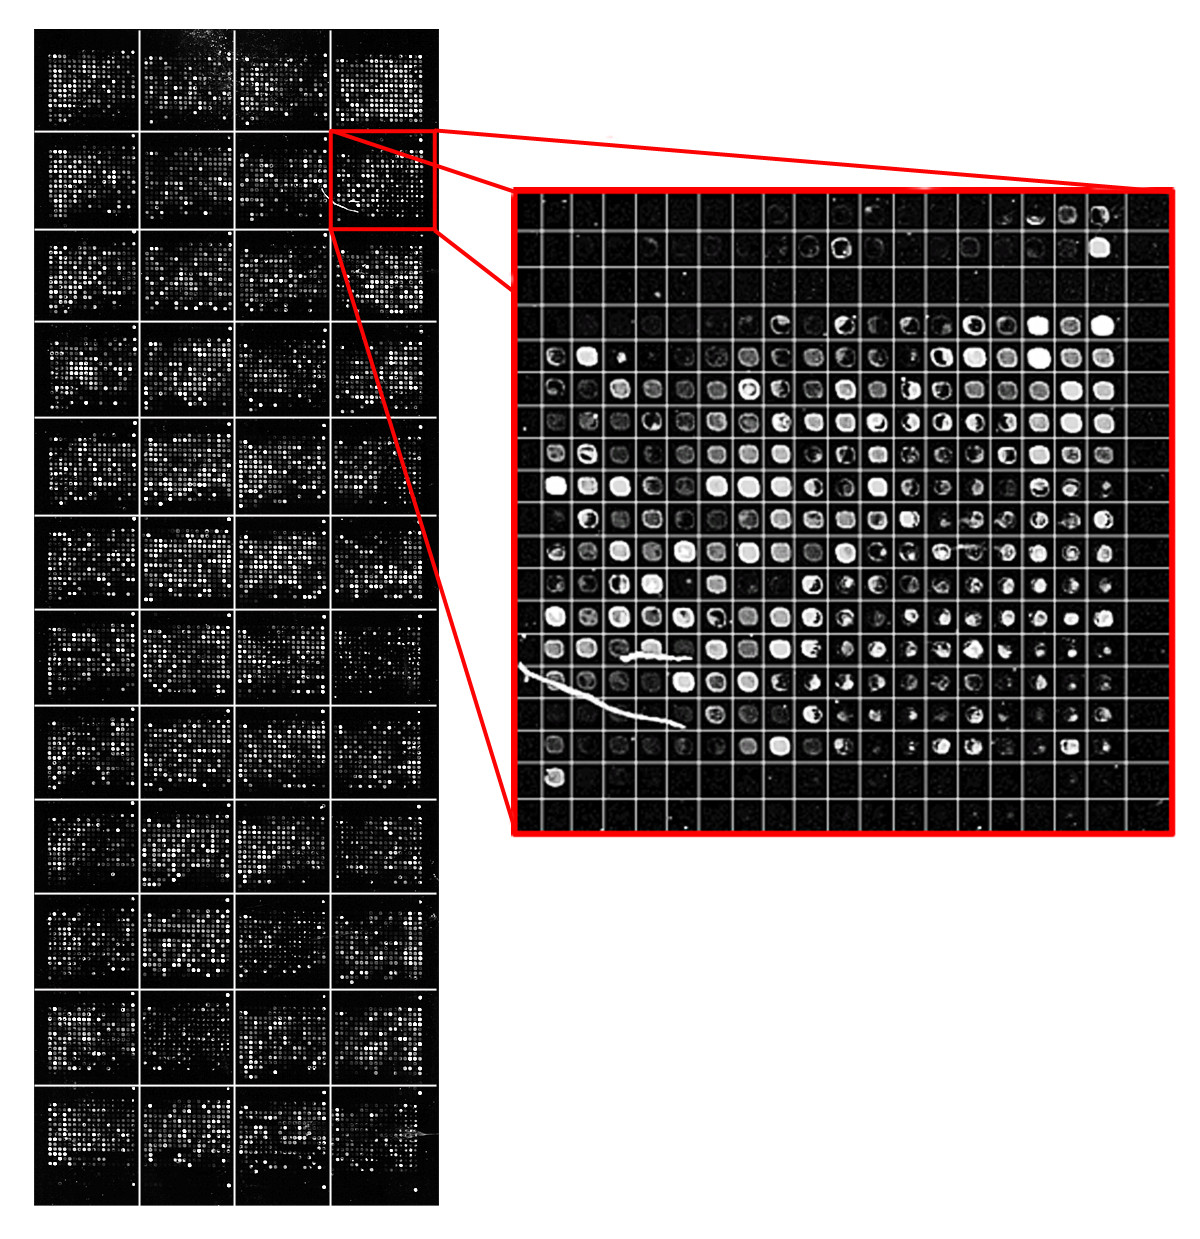 https://static-content.springer.com/image/art%3A10.1186%2F1471-2105-12-113/MediaObjects/12859_2010_Article_4507_Fig1_HTML.jpg